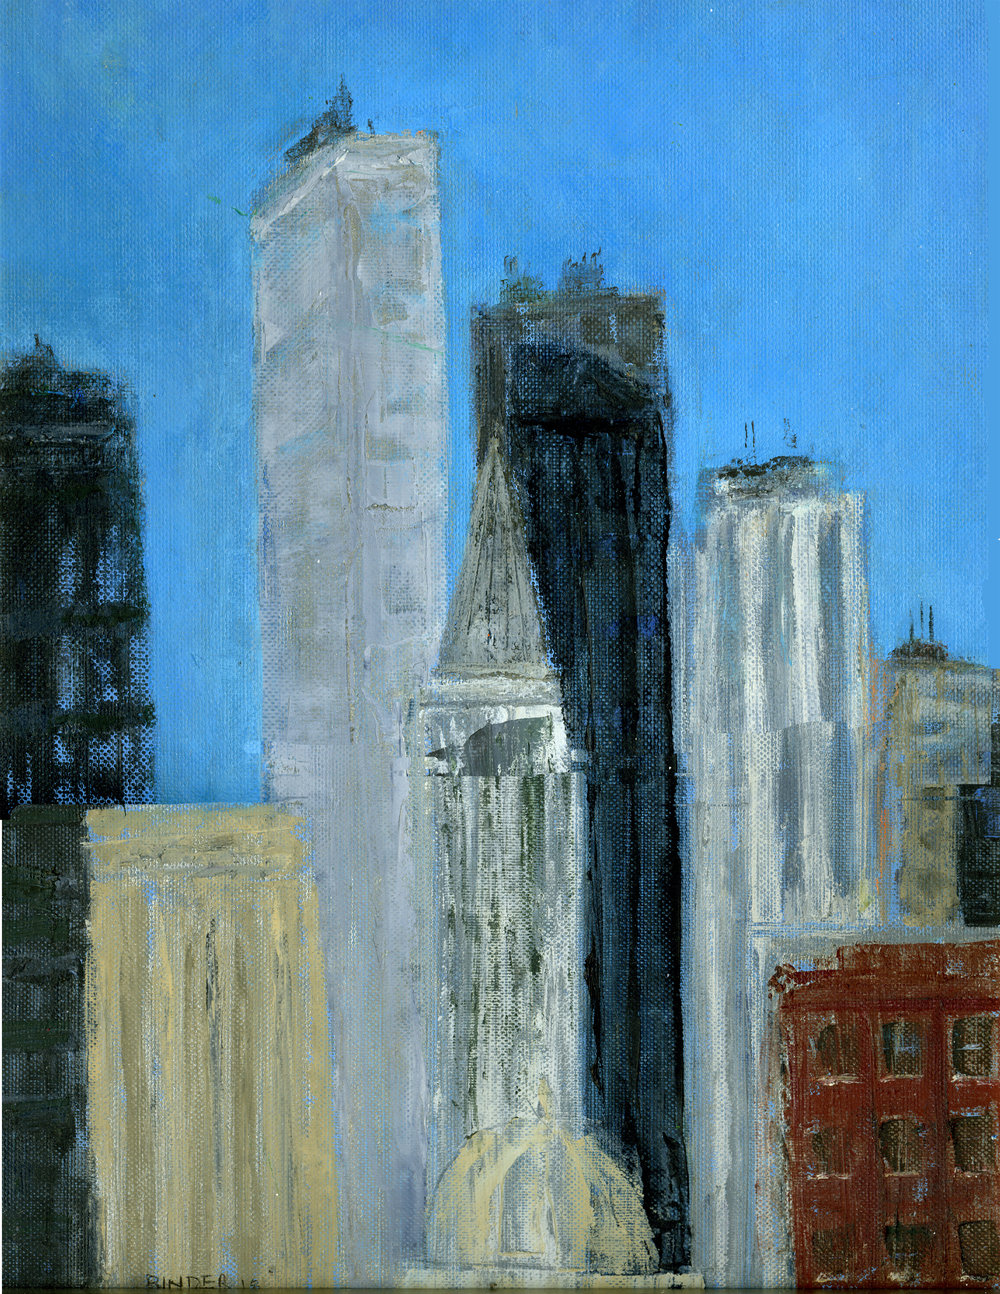 """Towering Reach for the Sky   Oil on canvas paper  16"""" x 12""""  $585  Click to Enlarge Image   Inquire."""